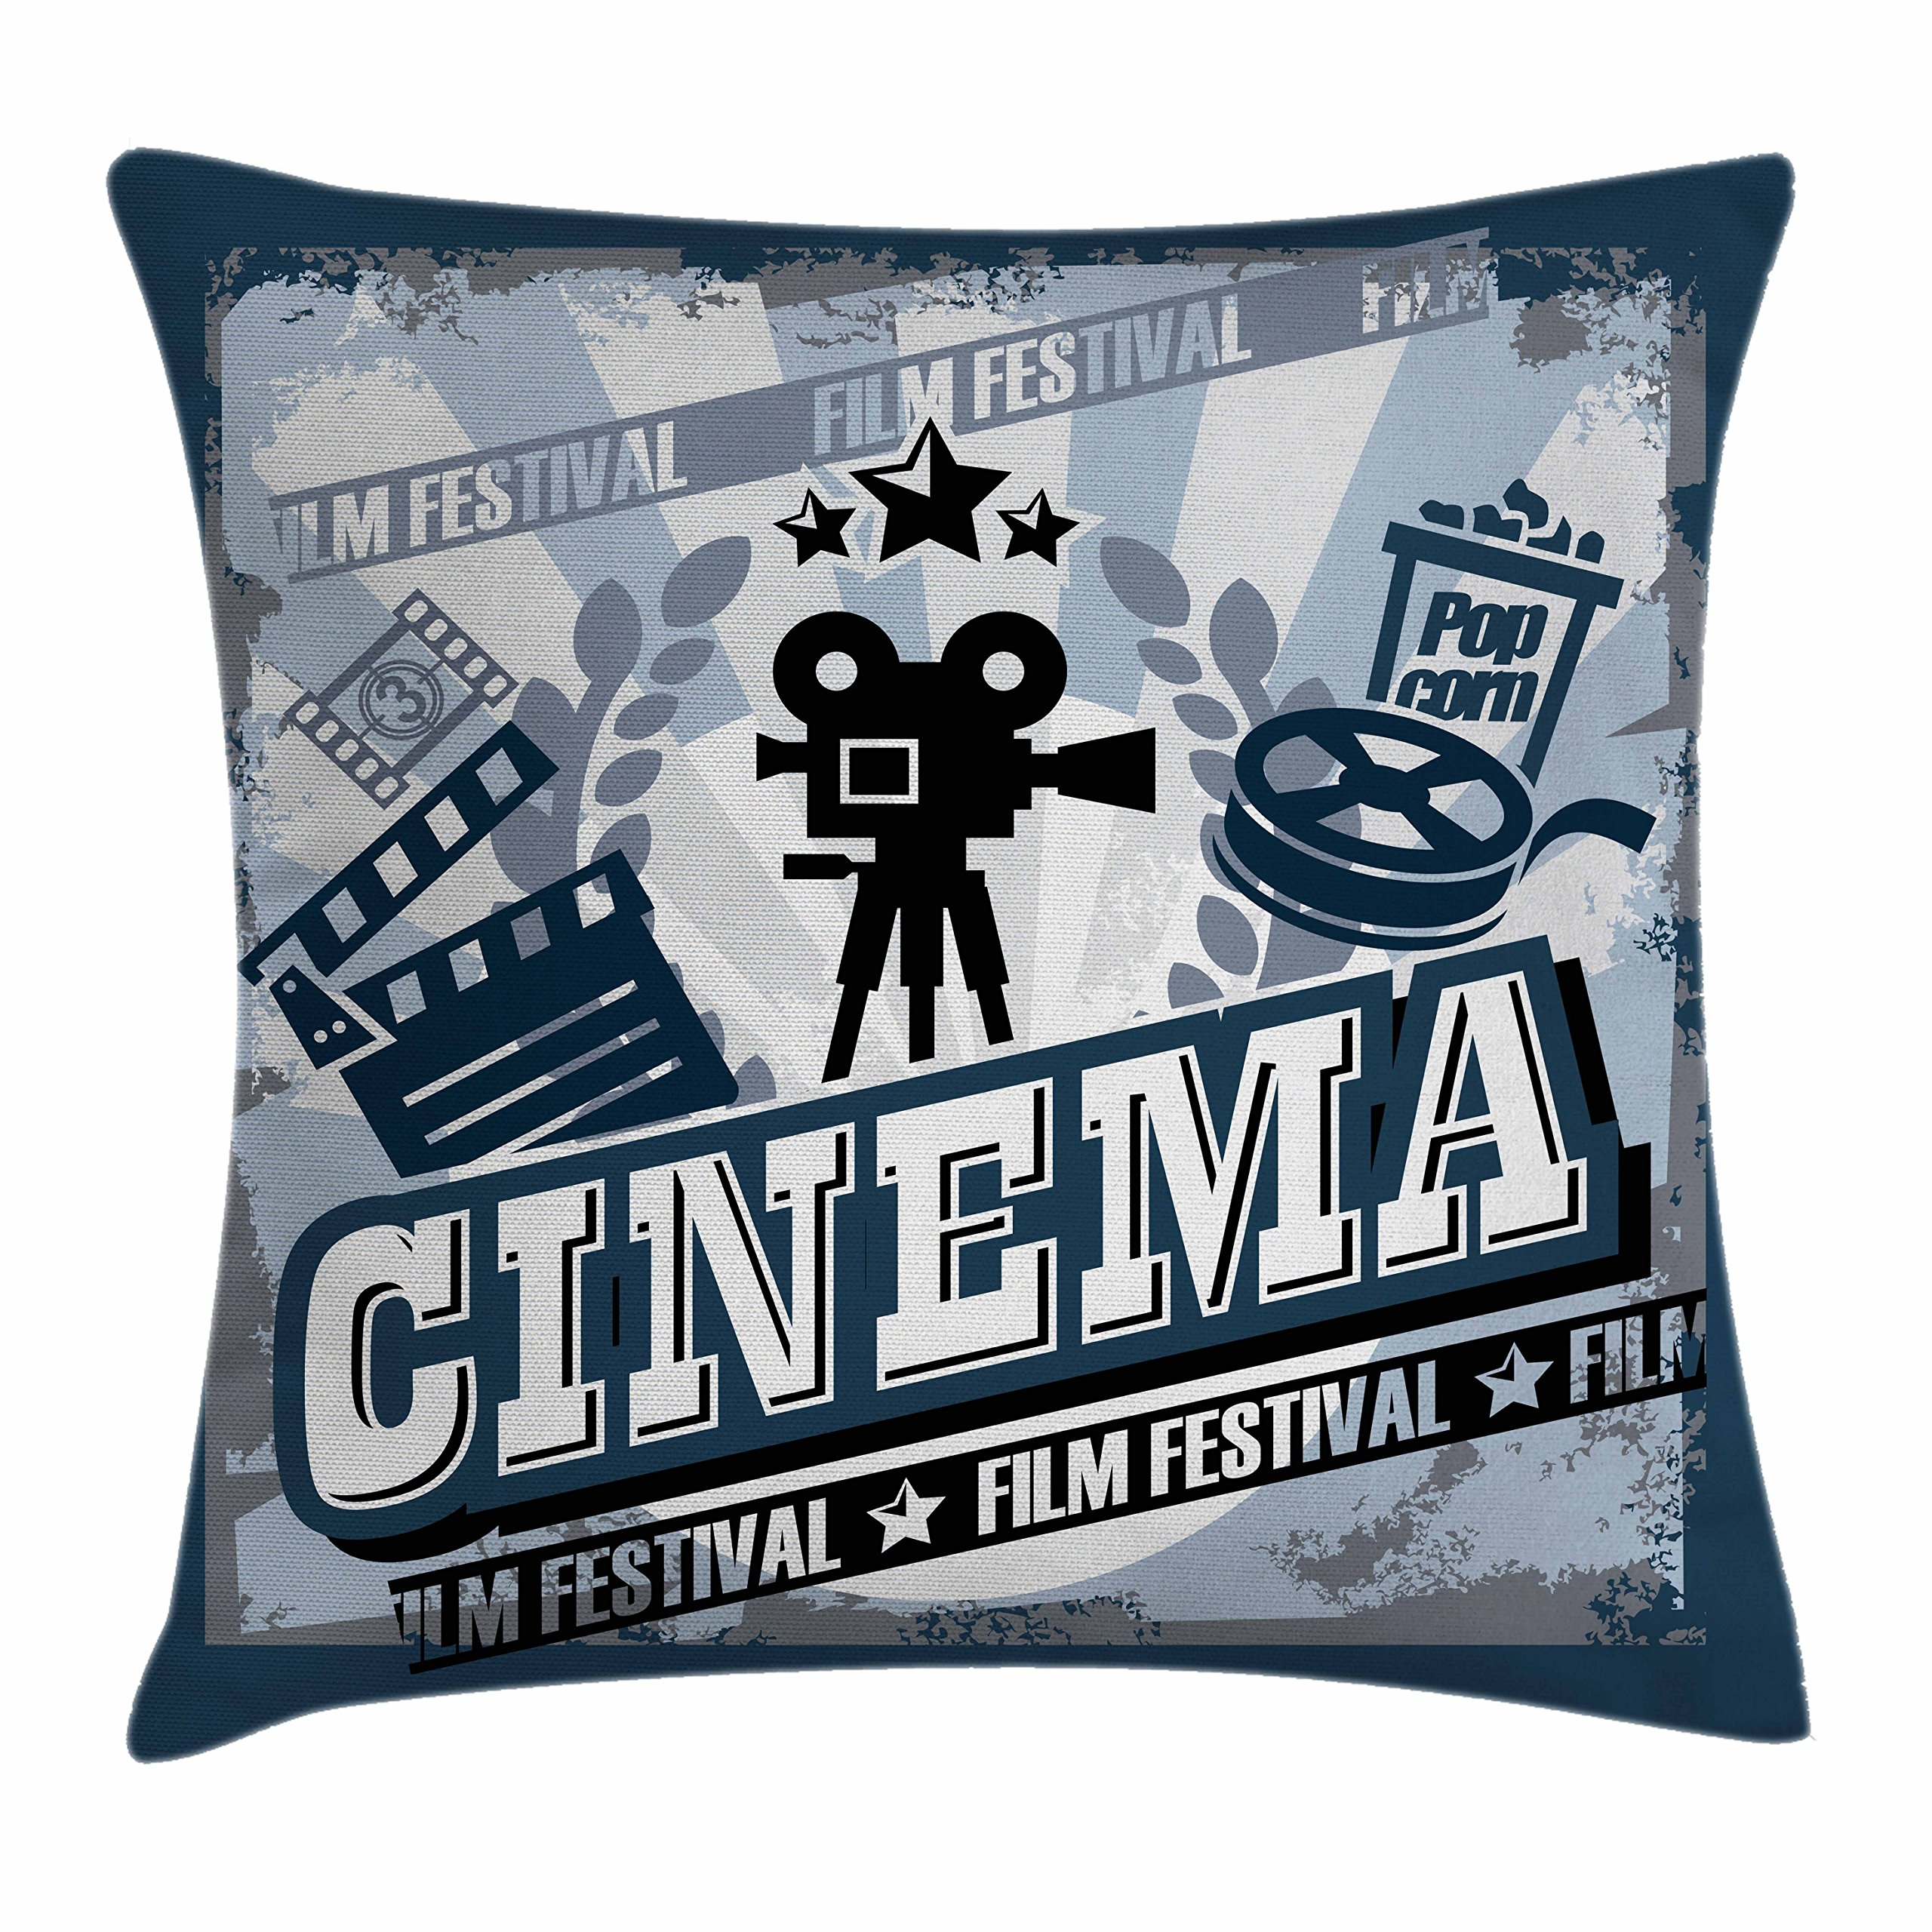 Ambesonne Movie Theater Throw Pillow Cushion Cover, Vintage Cinema Poster Design with Grunge Effect and Old Fashioned Icons, Decorative Square Accent Pillow Case, 16 X 16 inches, Blue Black Grey by Ambesonne